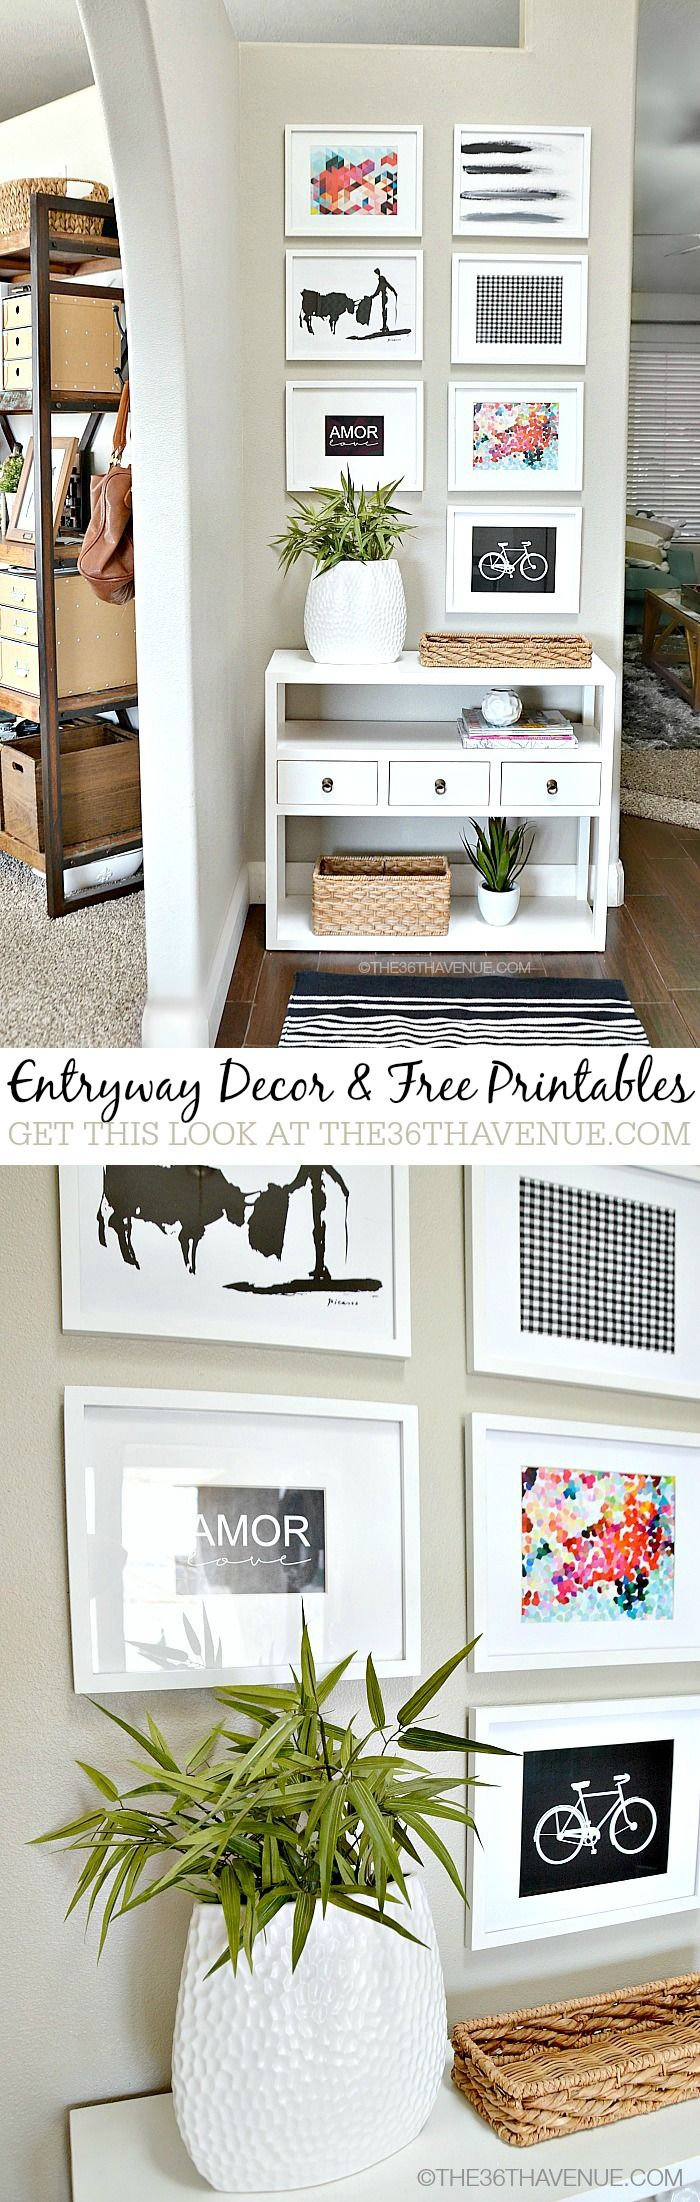 Home Decor- Entryway Decor and Free Gall Art Printables at the36thavenue.com #homedecor